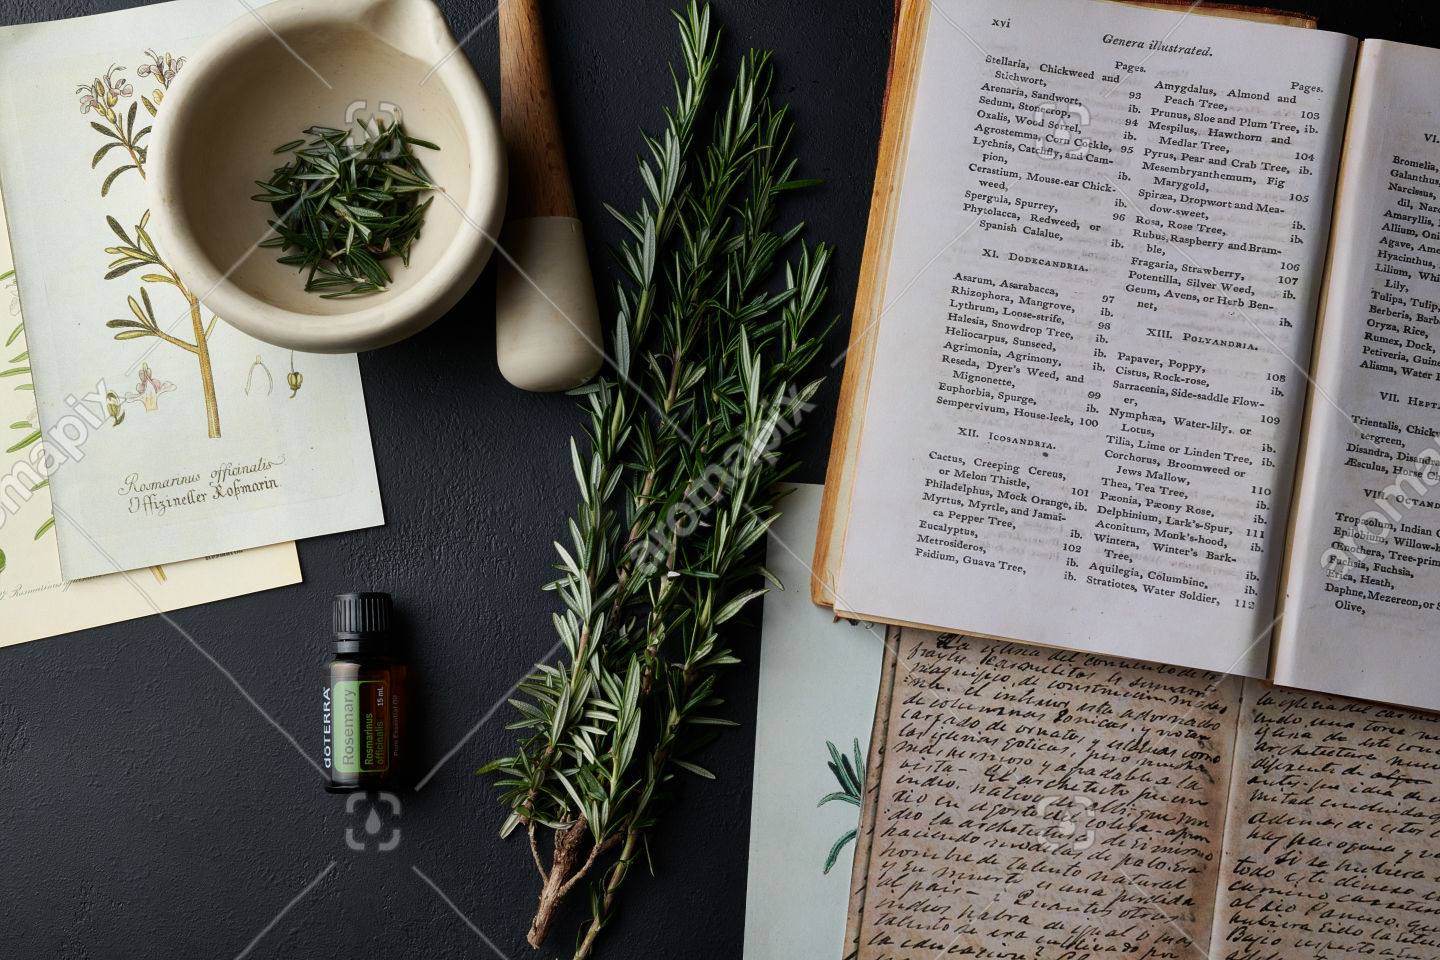 doTERRA Rosemary with books and rosemary branch on black